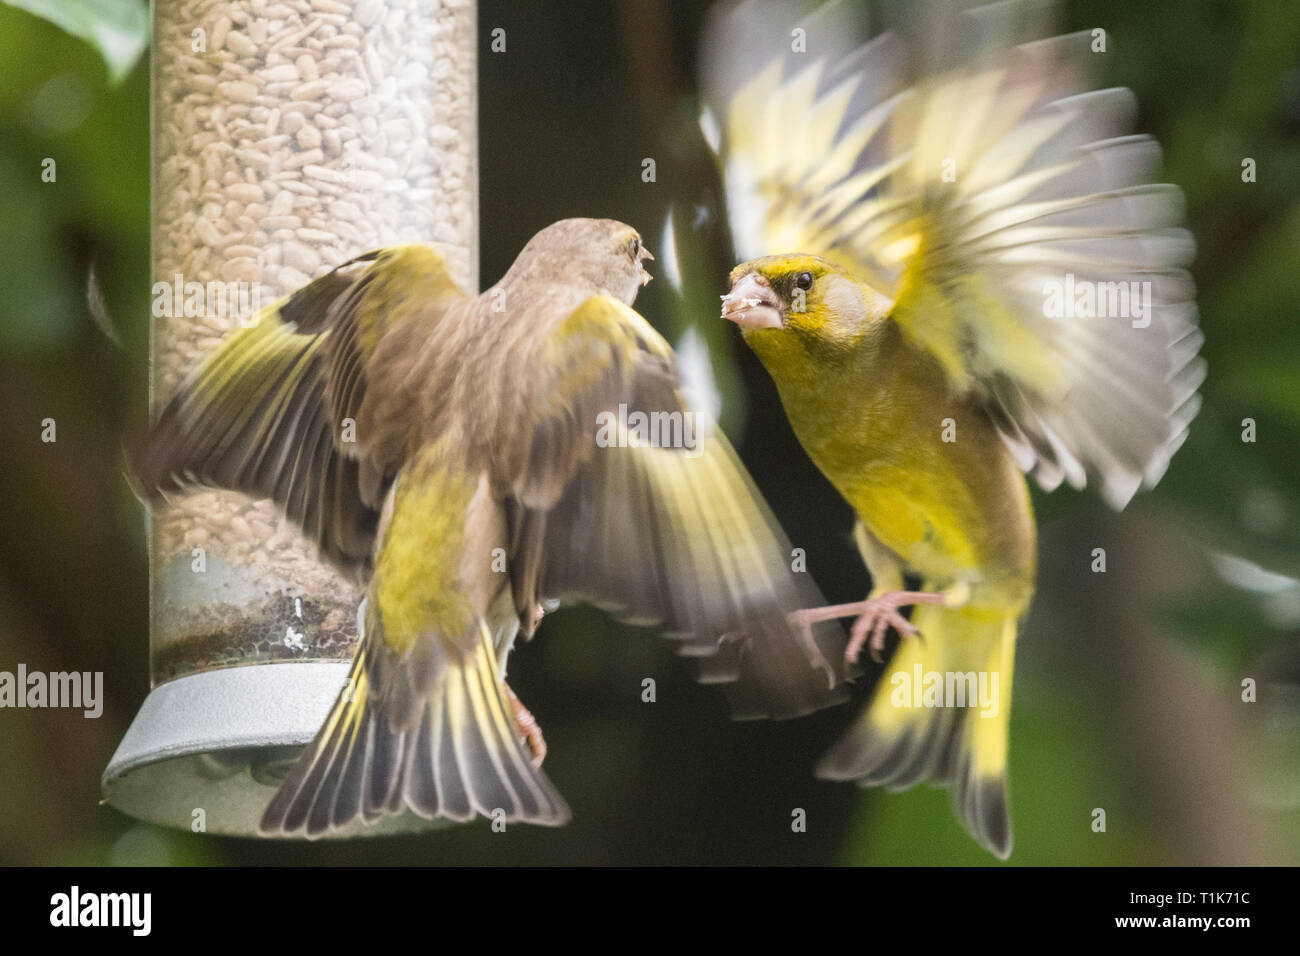 Stirlingshire, Scotland, UK. 27th Mar, 2019. UK weather - greenfinches fighting over food brighten up an otherwise dull day in Stirlingshire Credit: Kay Roxby/Alamy Live News Stock Photo